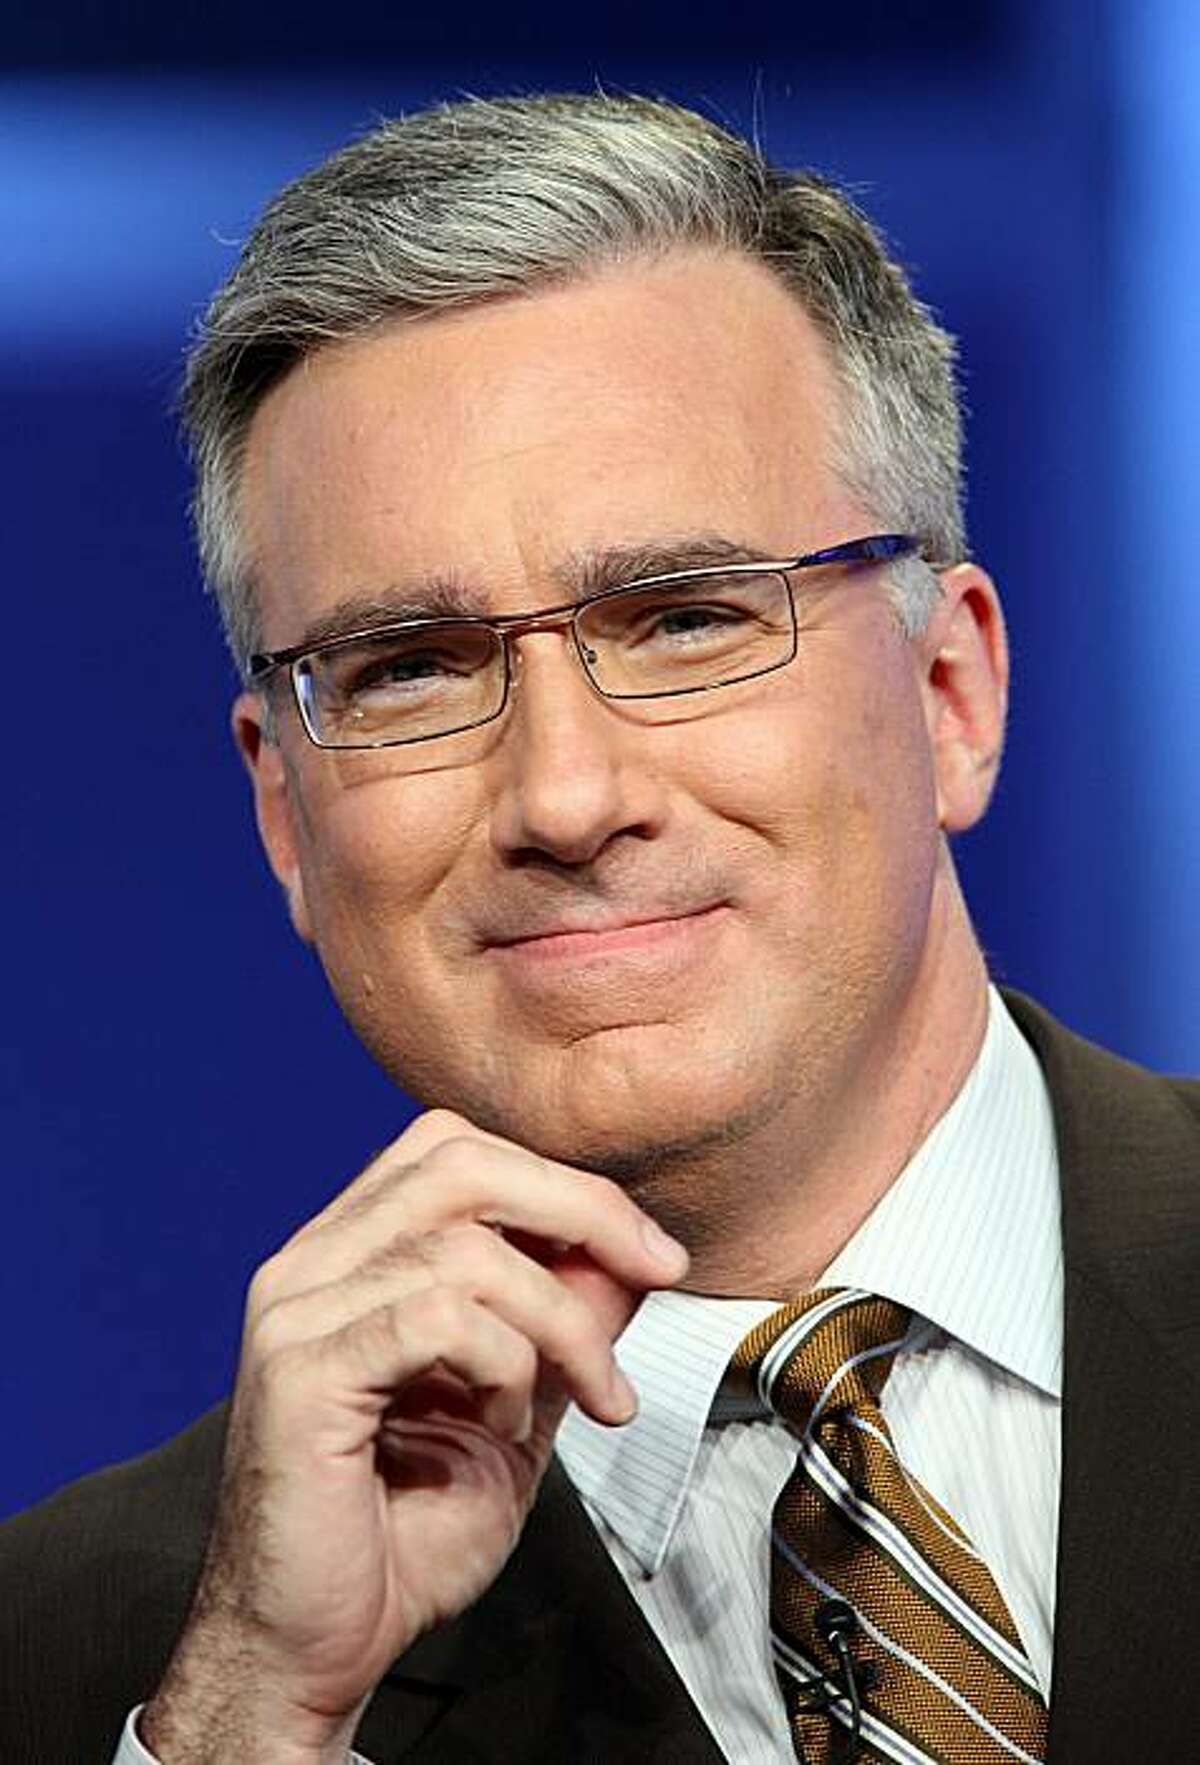 BEVERLY HILLS, CA - JULY 21: (FILE PHOTO) Co-host Keith Olbermann of